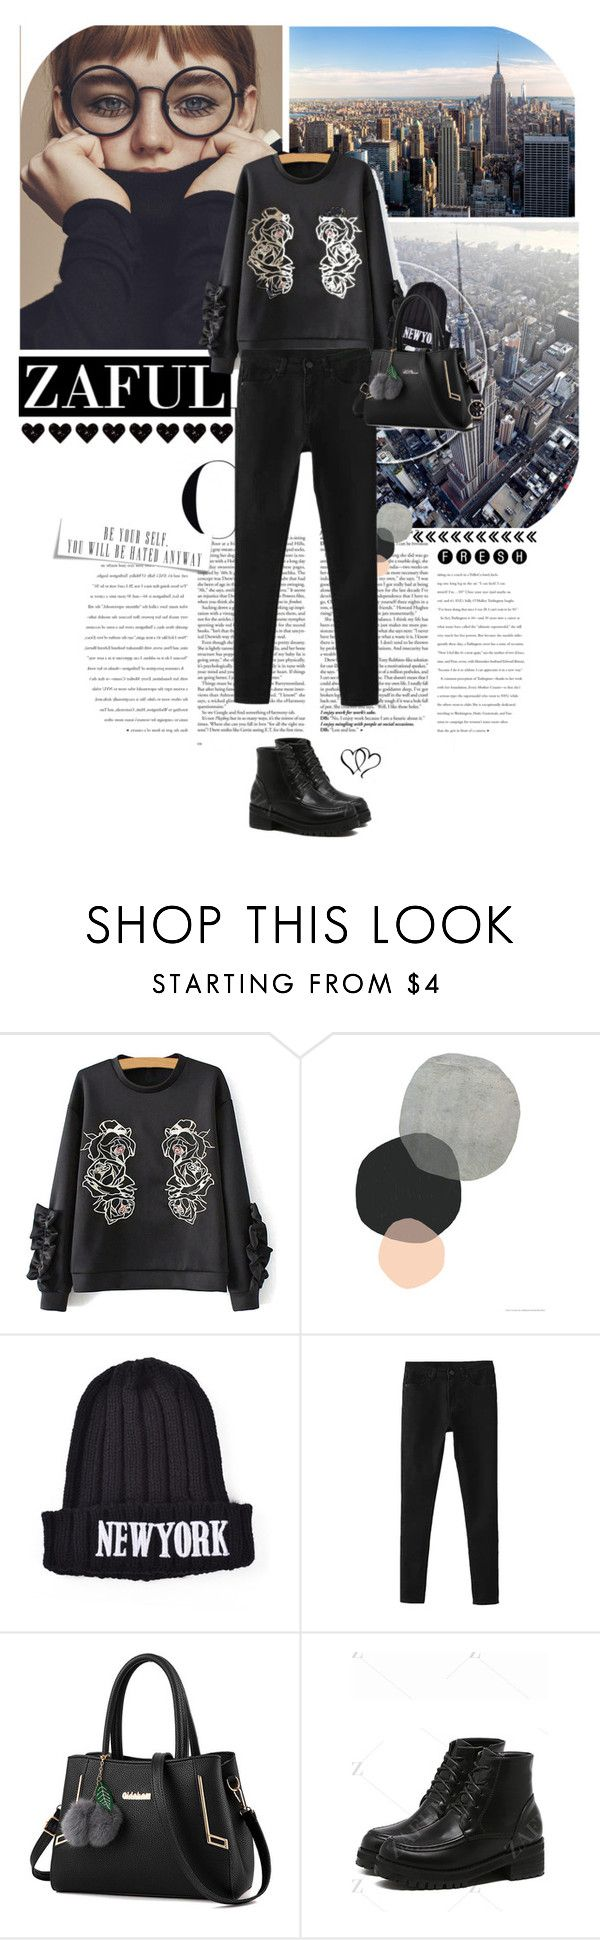 """""""Pretty woman walking down the street..."""" by bbiillggeess ❤ liked on Polyvore featuring black, pretty, booties, woman and bbiillggees"""